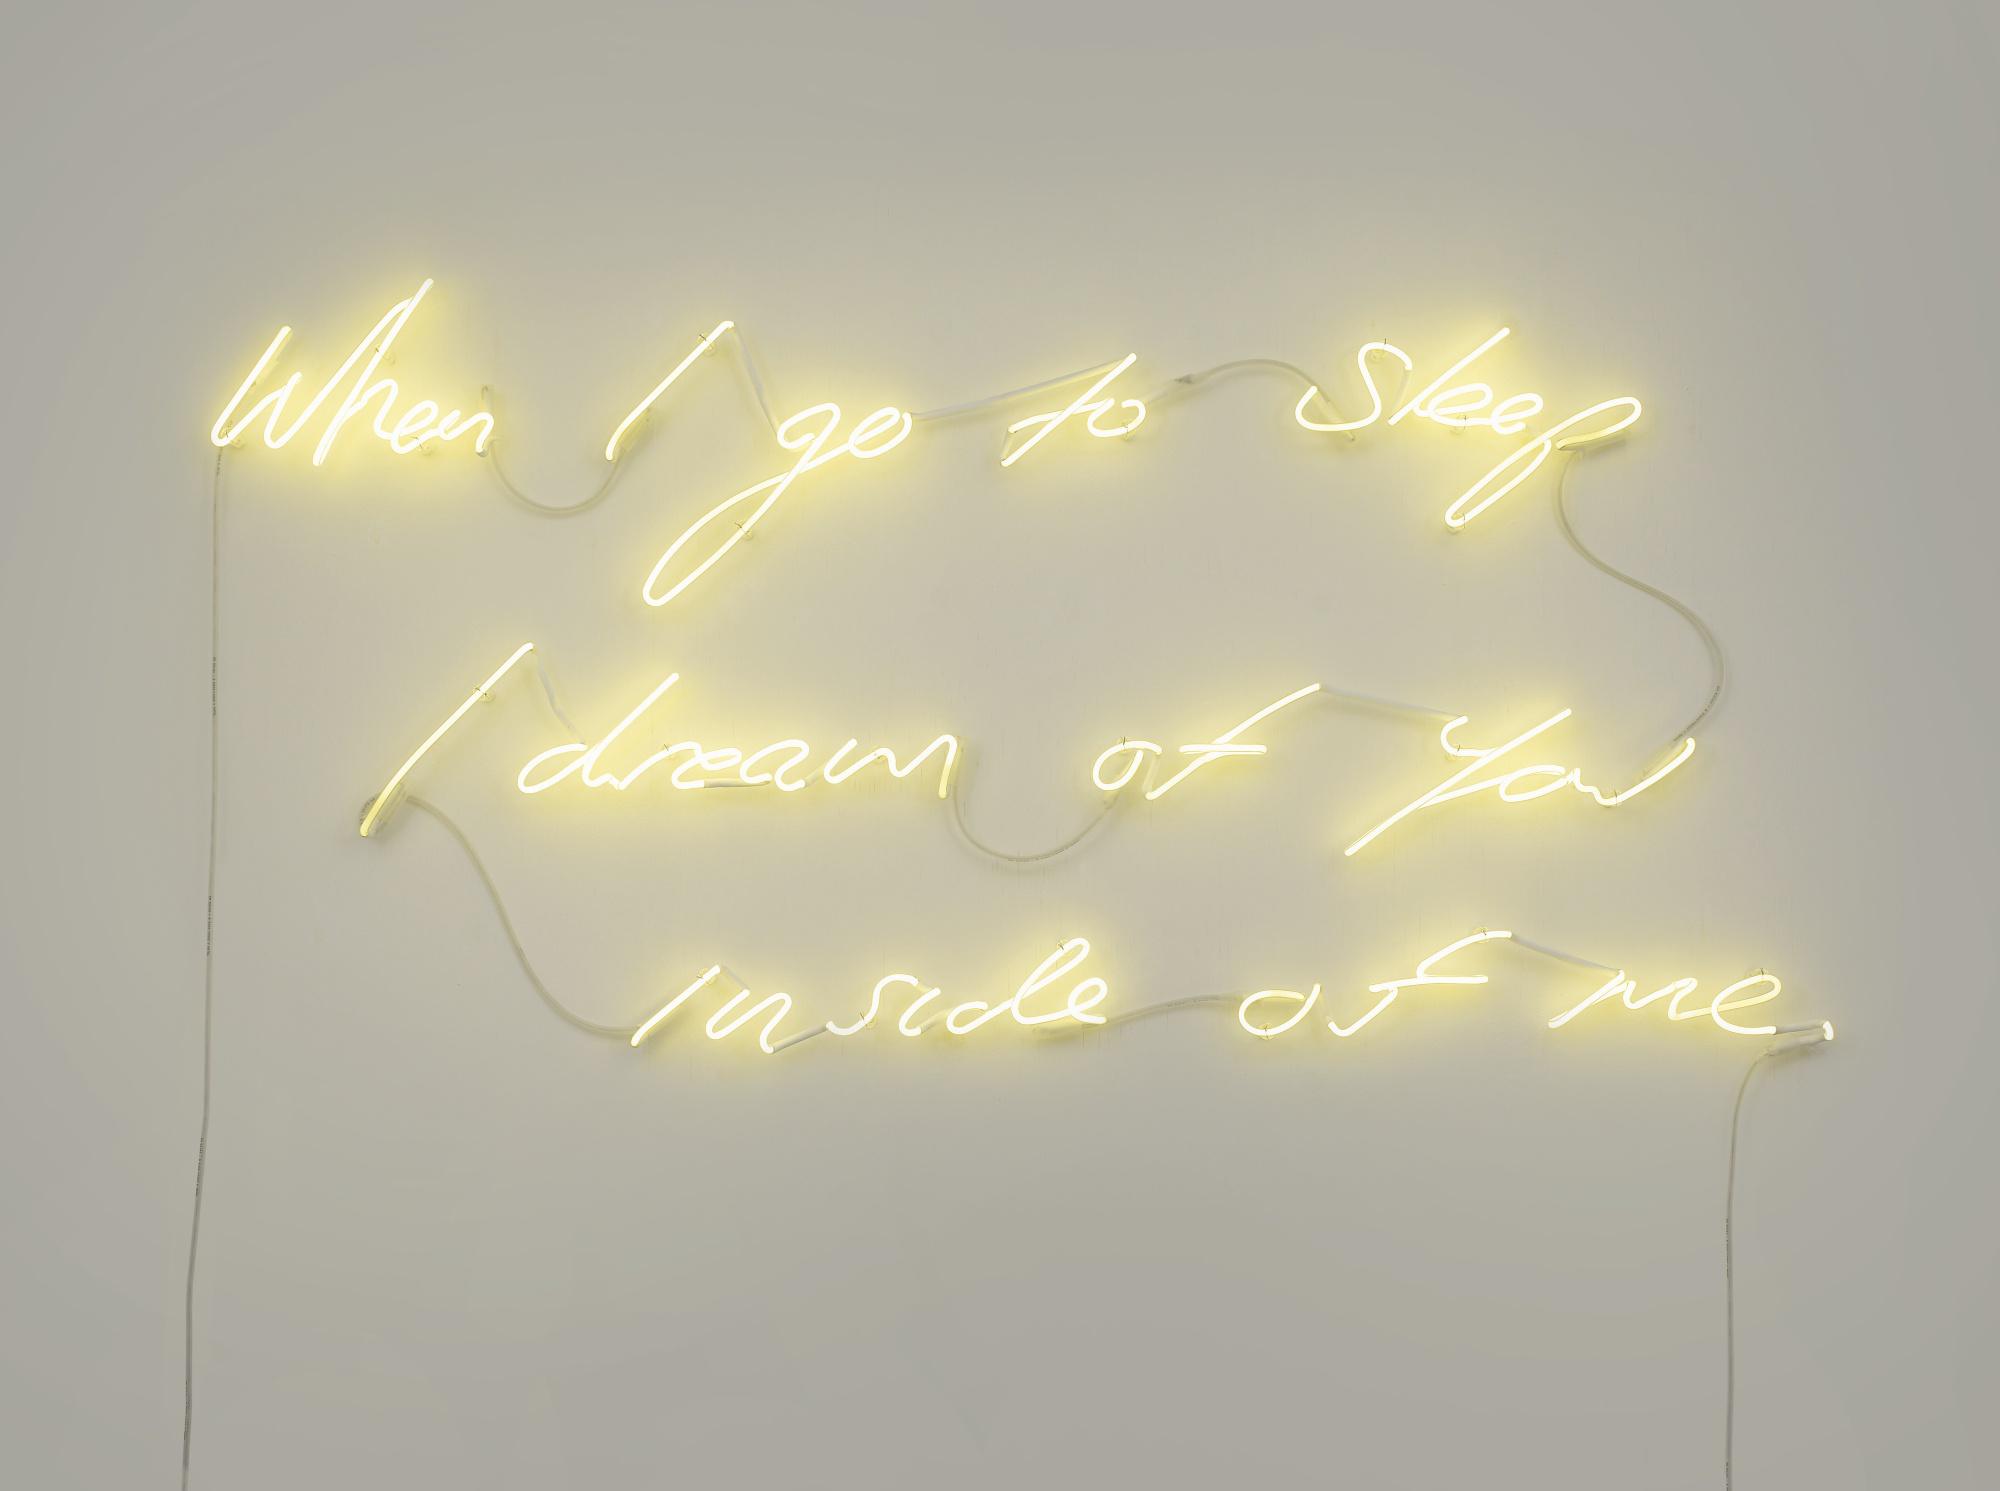 Tracey Emin-When I Go To Sleep I Dream Of You Inside Of Me-2003